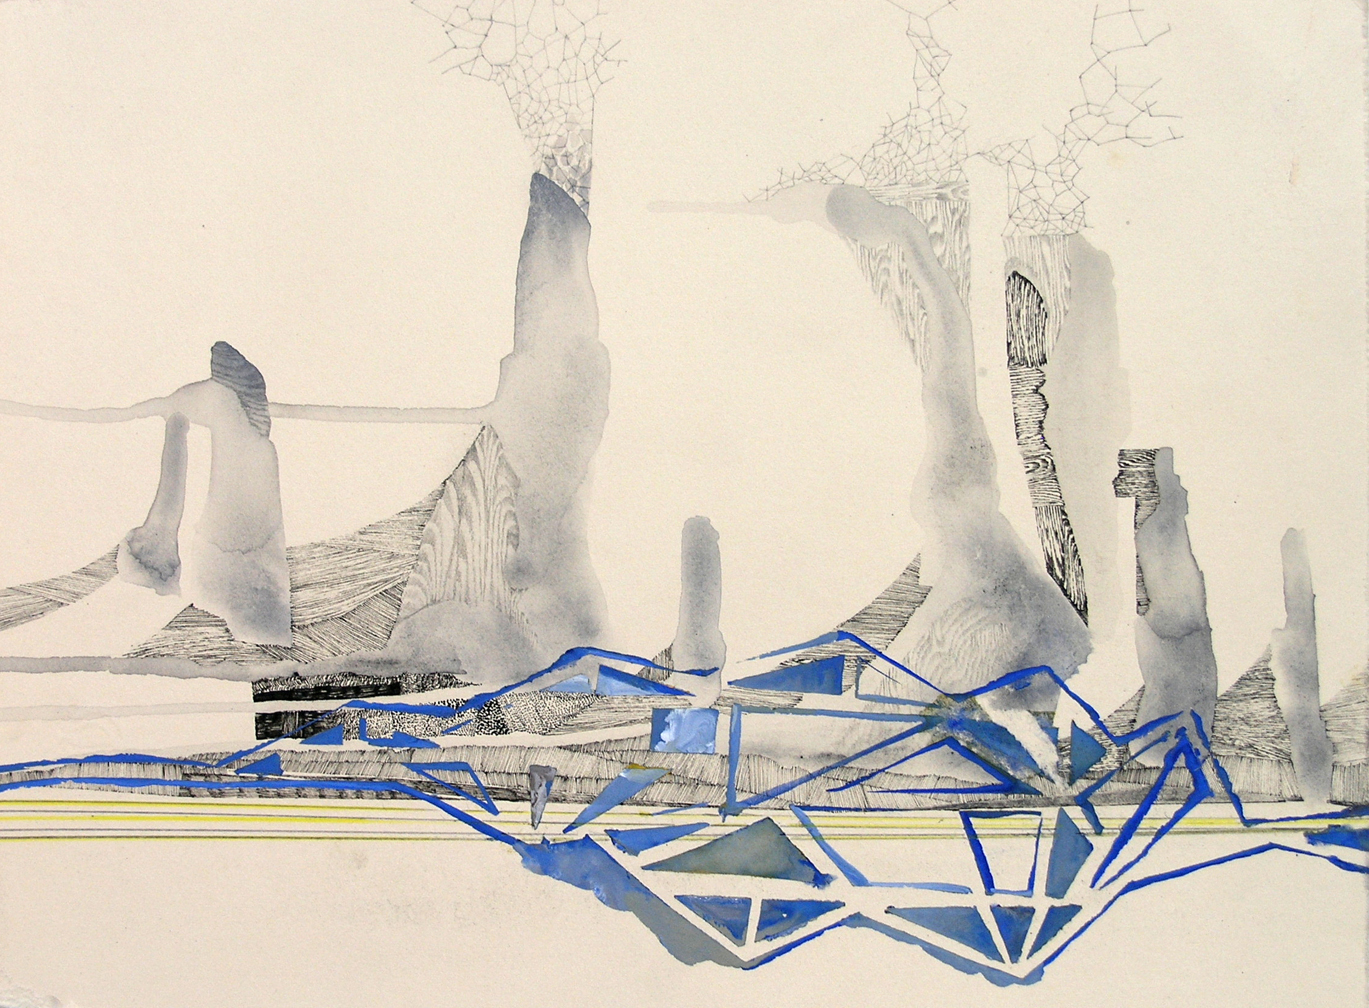 """Hughen/Starkweather,  Requiem 7  (from the Bay Bridge Project), Gouache, pencil, and ink on paper, 8.25""""h x 10.75""""w, 2013"""